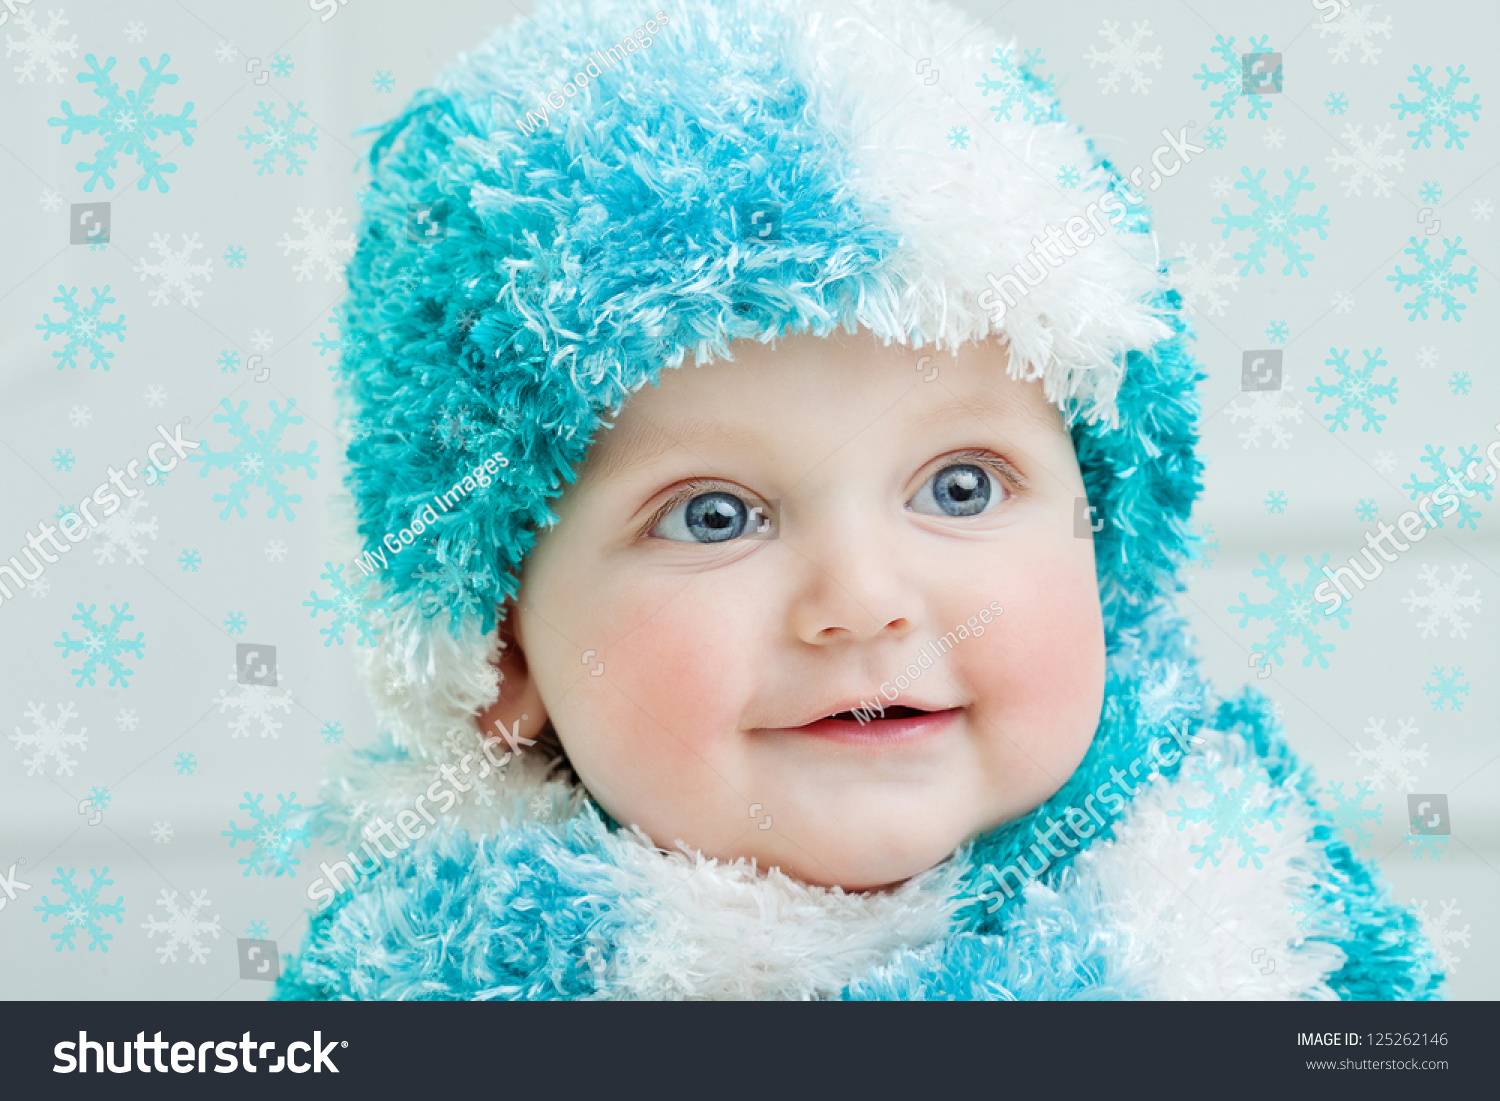 916a90e83fc1 Cute Baby Winter Background Stock Photo (Edit Now) 125262146 ...